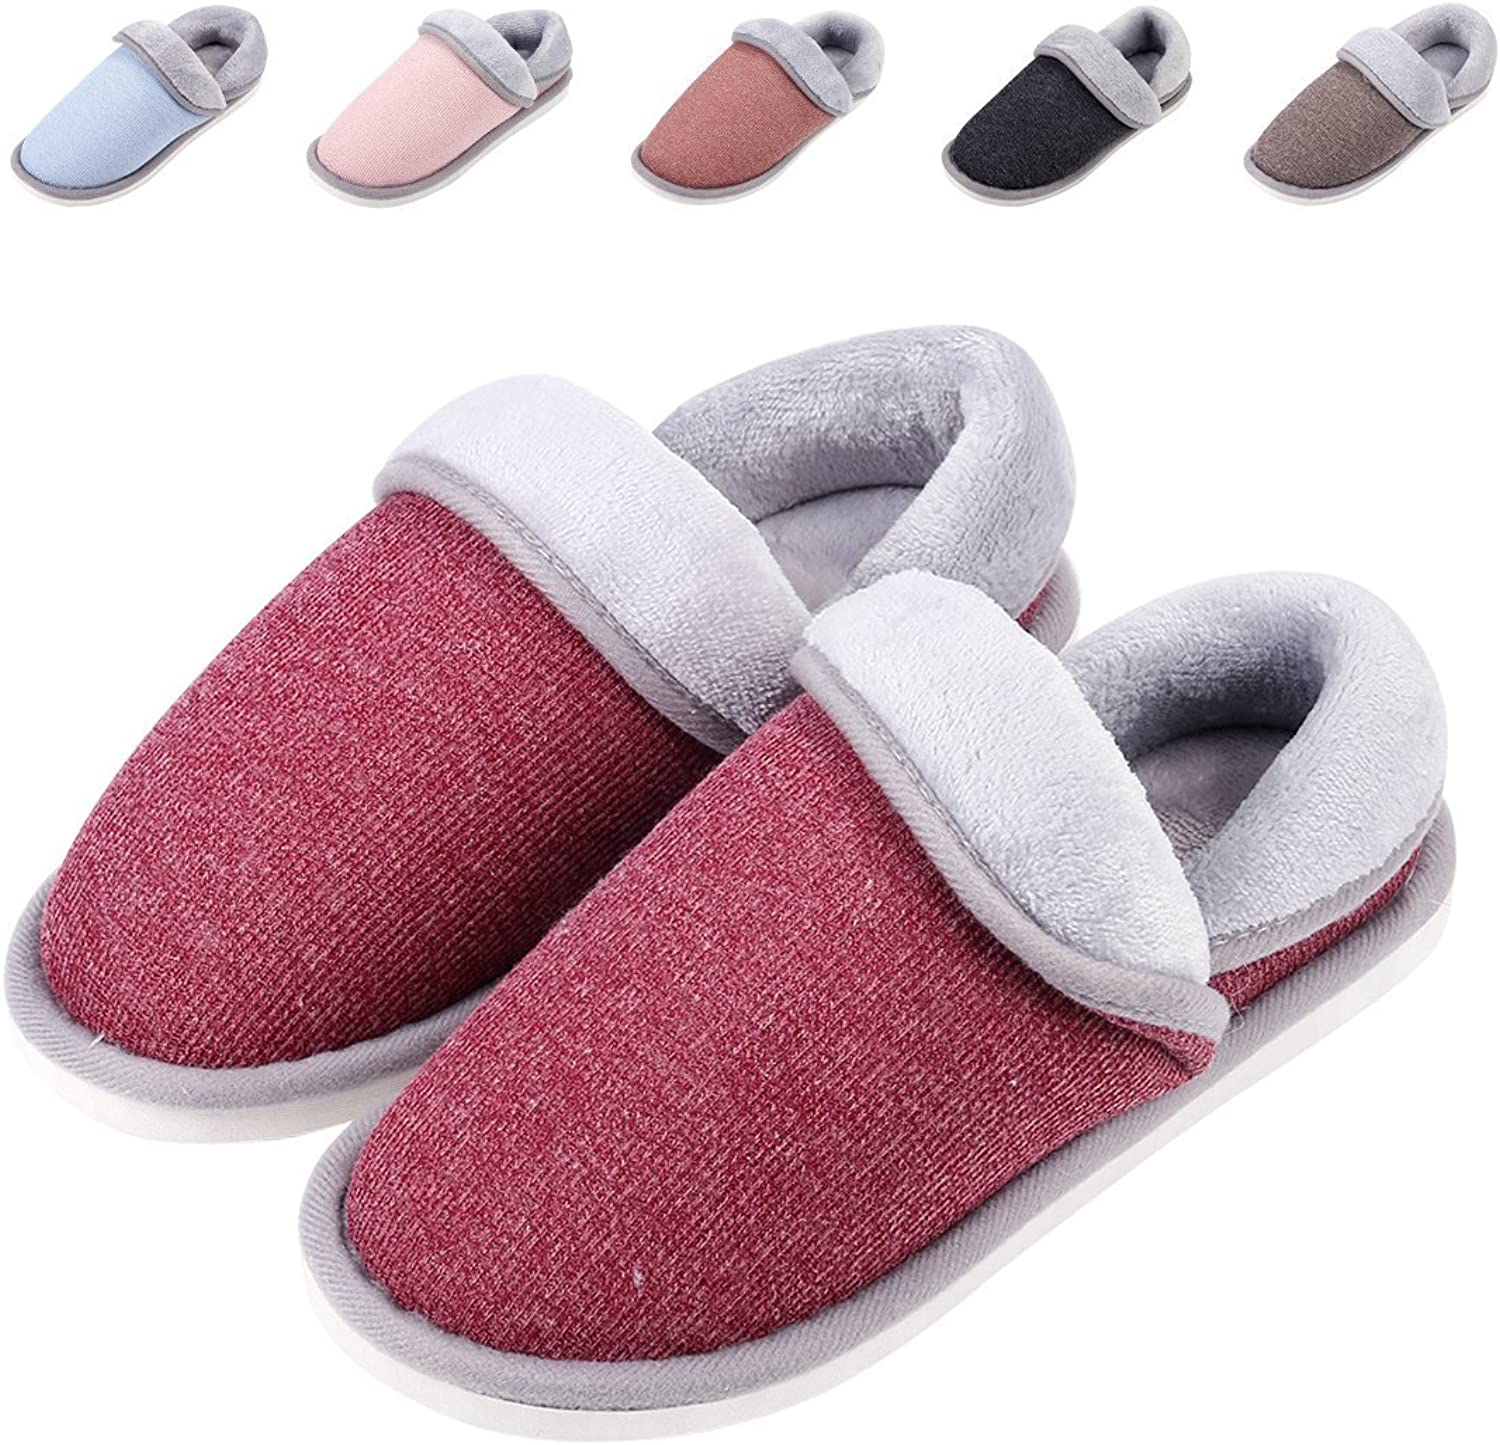 Leisurely Pace Unisex Cozy House Slippers - Fluffy Foldable Boots for Winter - Moccasin Slippers shoes Indoor Outdoor